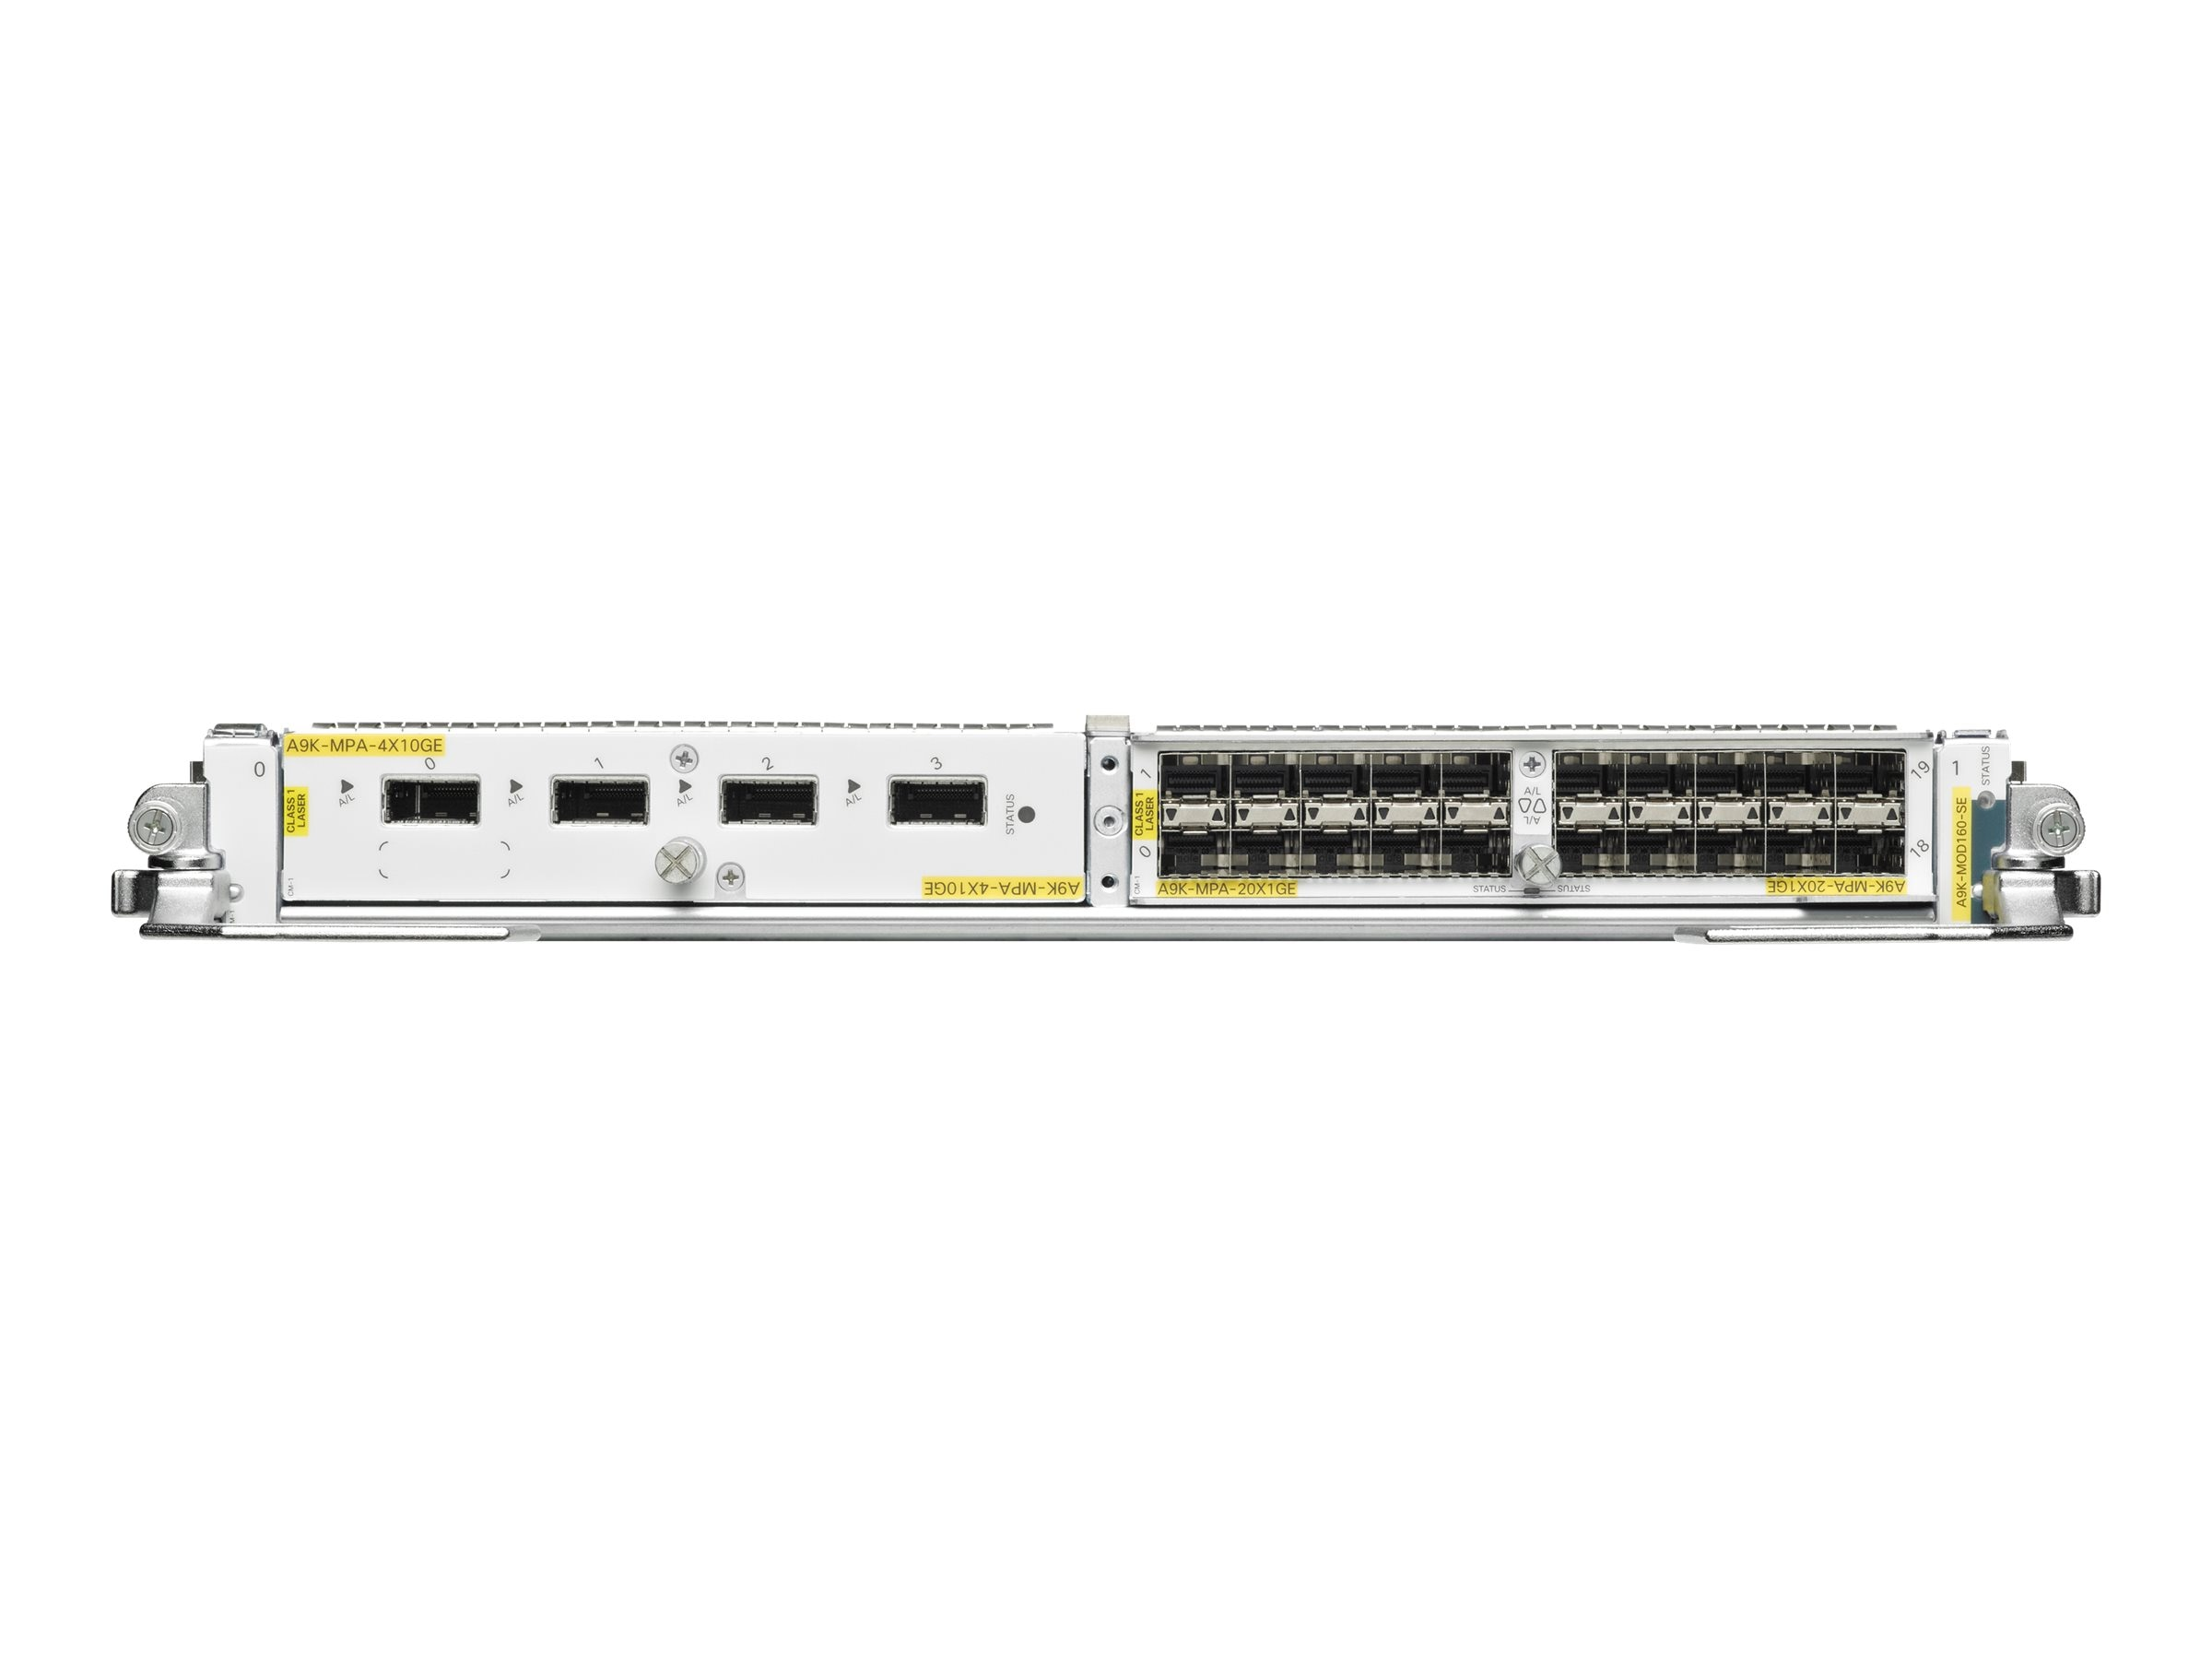 Cisco ASR 9000 Mod160 Modular Line Card, Service Edge Optimized (Req Modular Port Adapters)